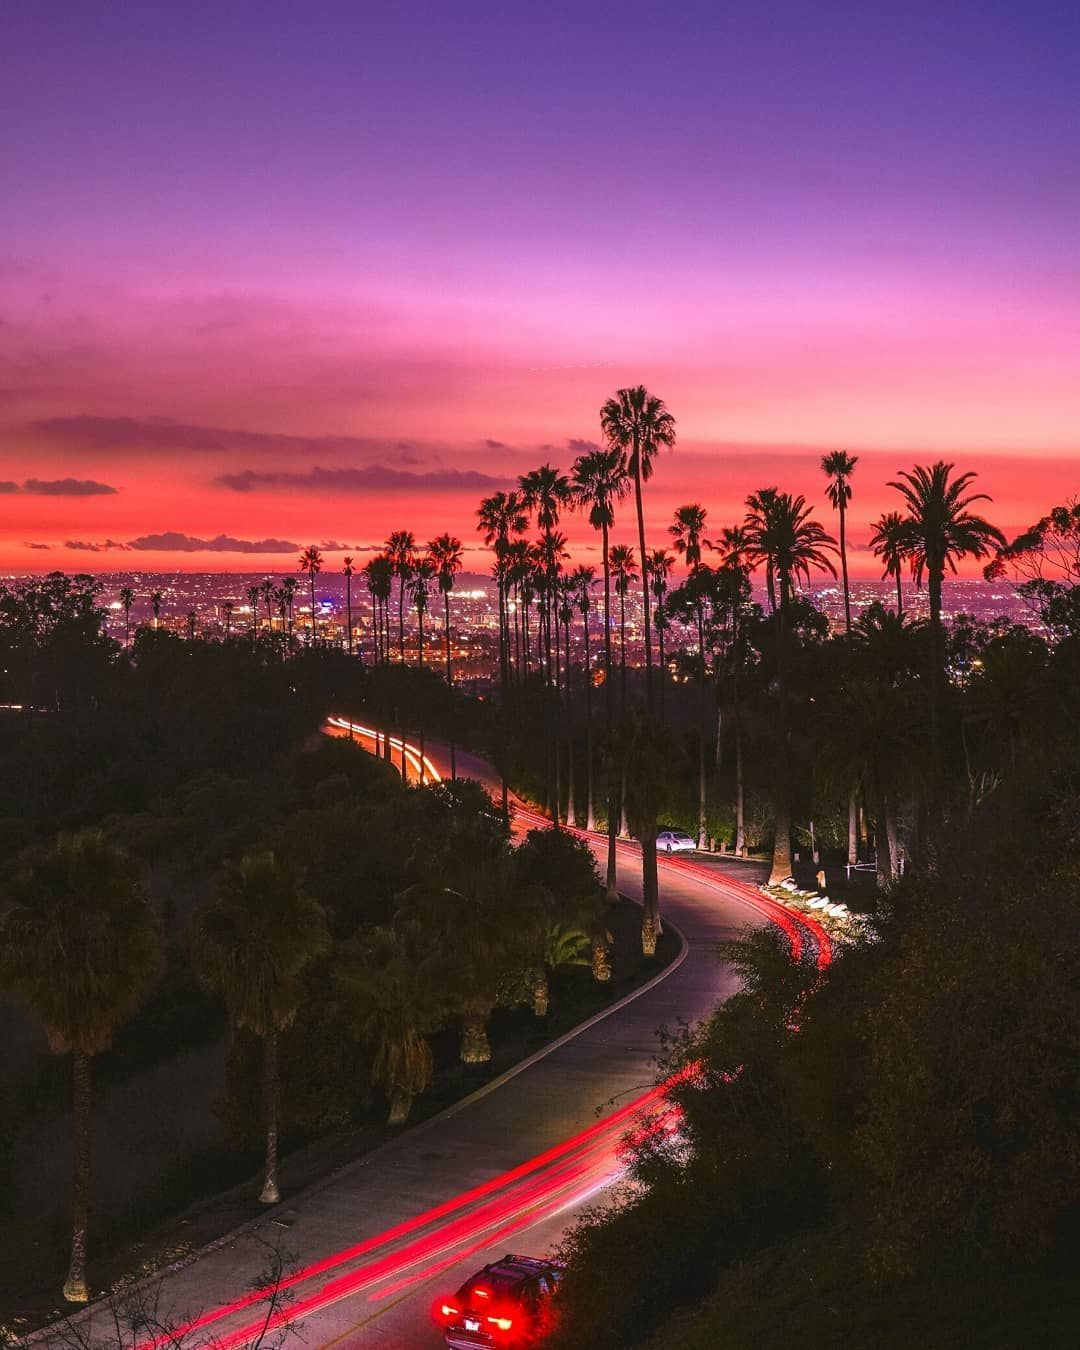 When Is Sunset In Los Angeles